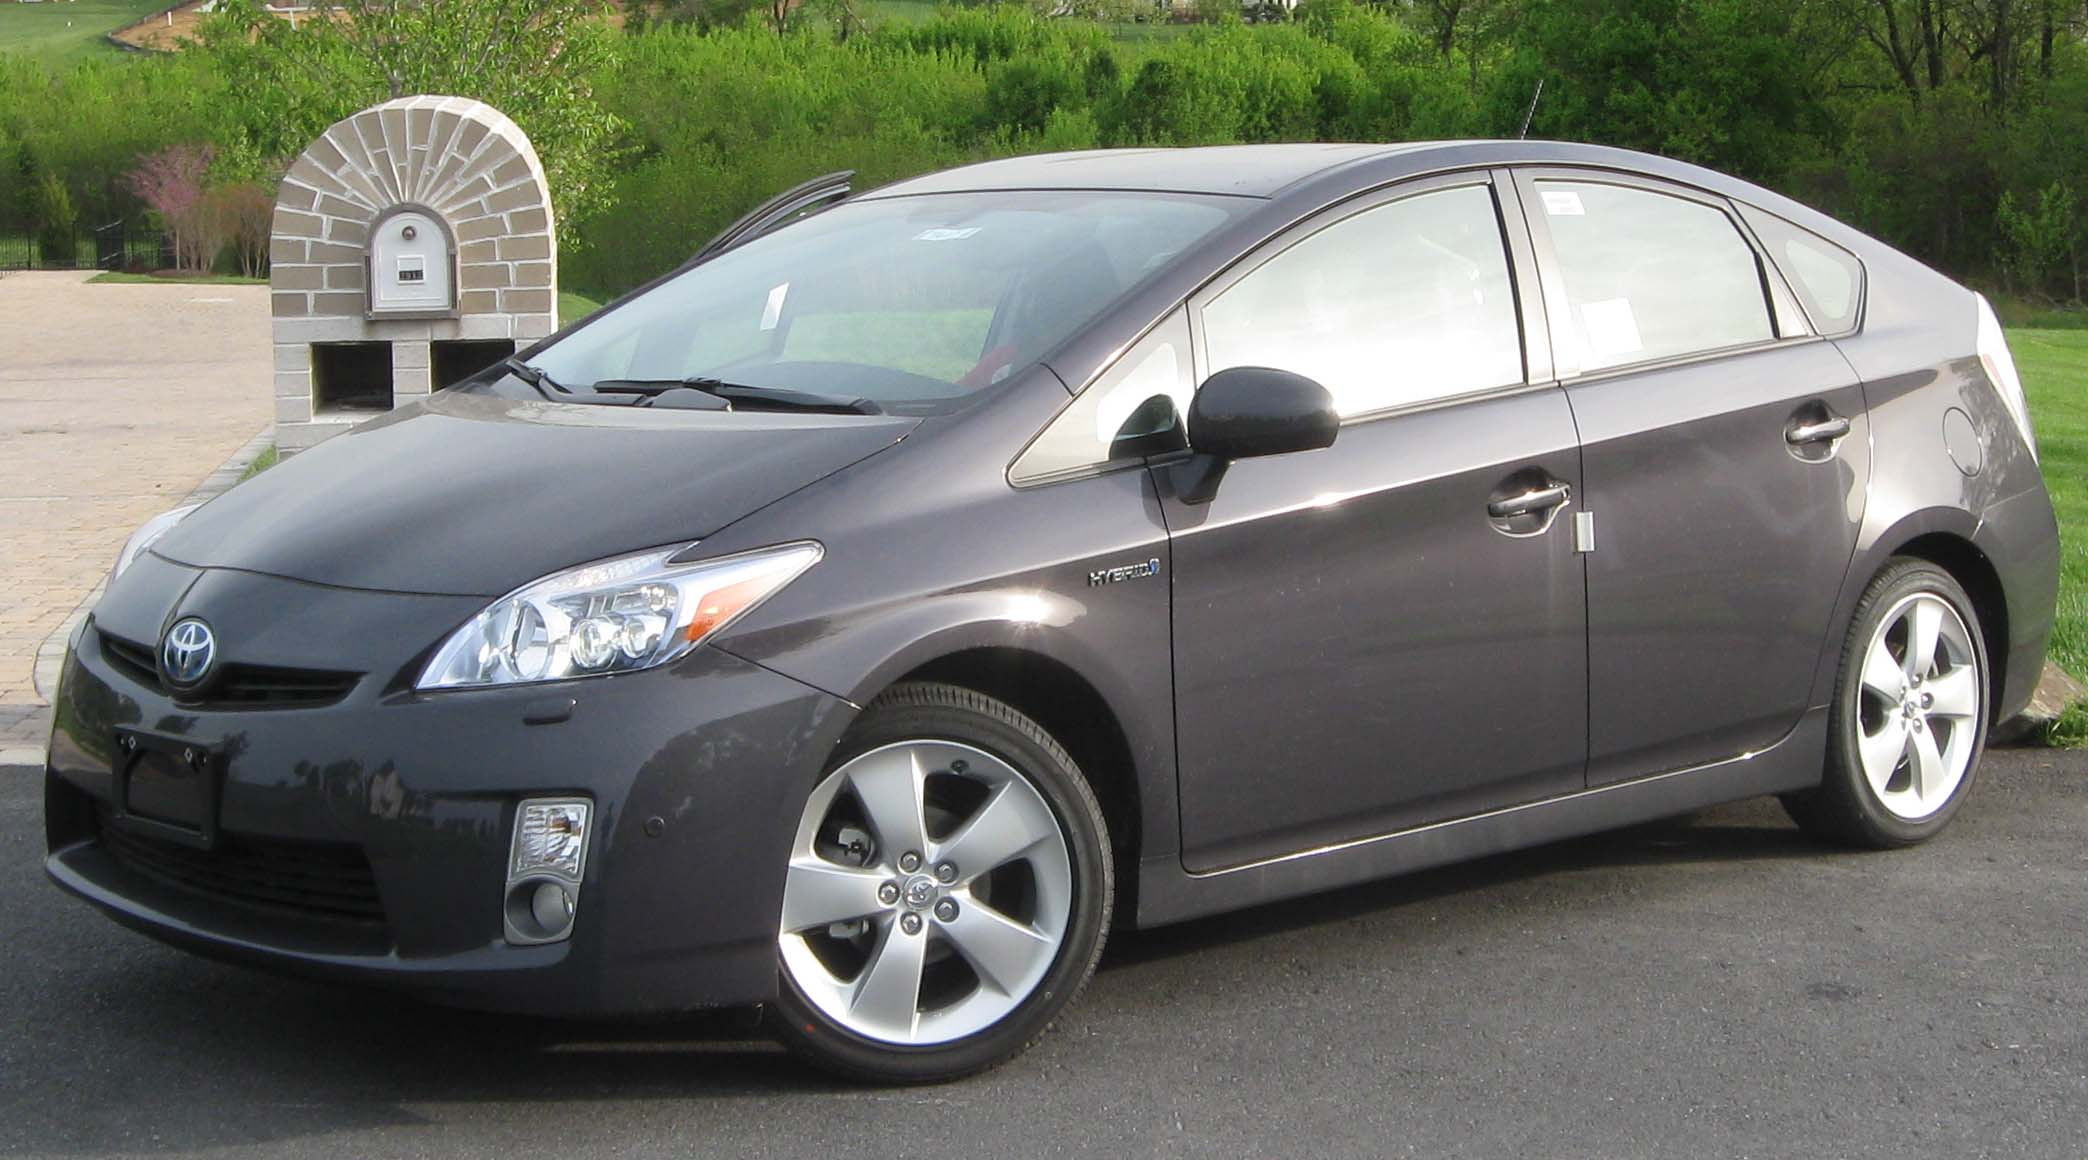 File:2010 Toyota Prius V -- 04-20-2010.jpg - Wikipedia, the free ...